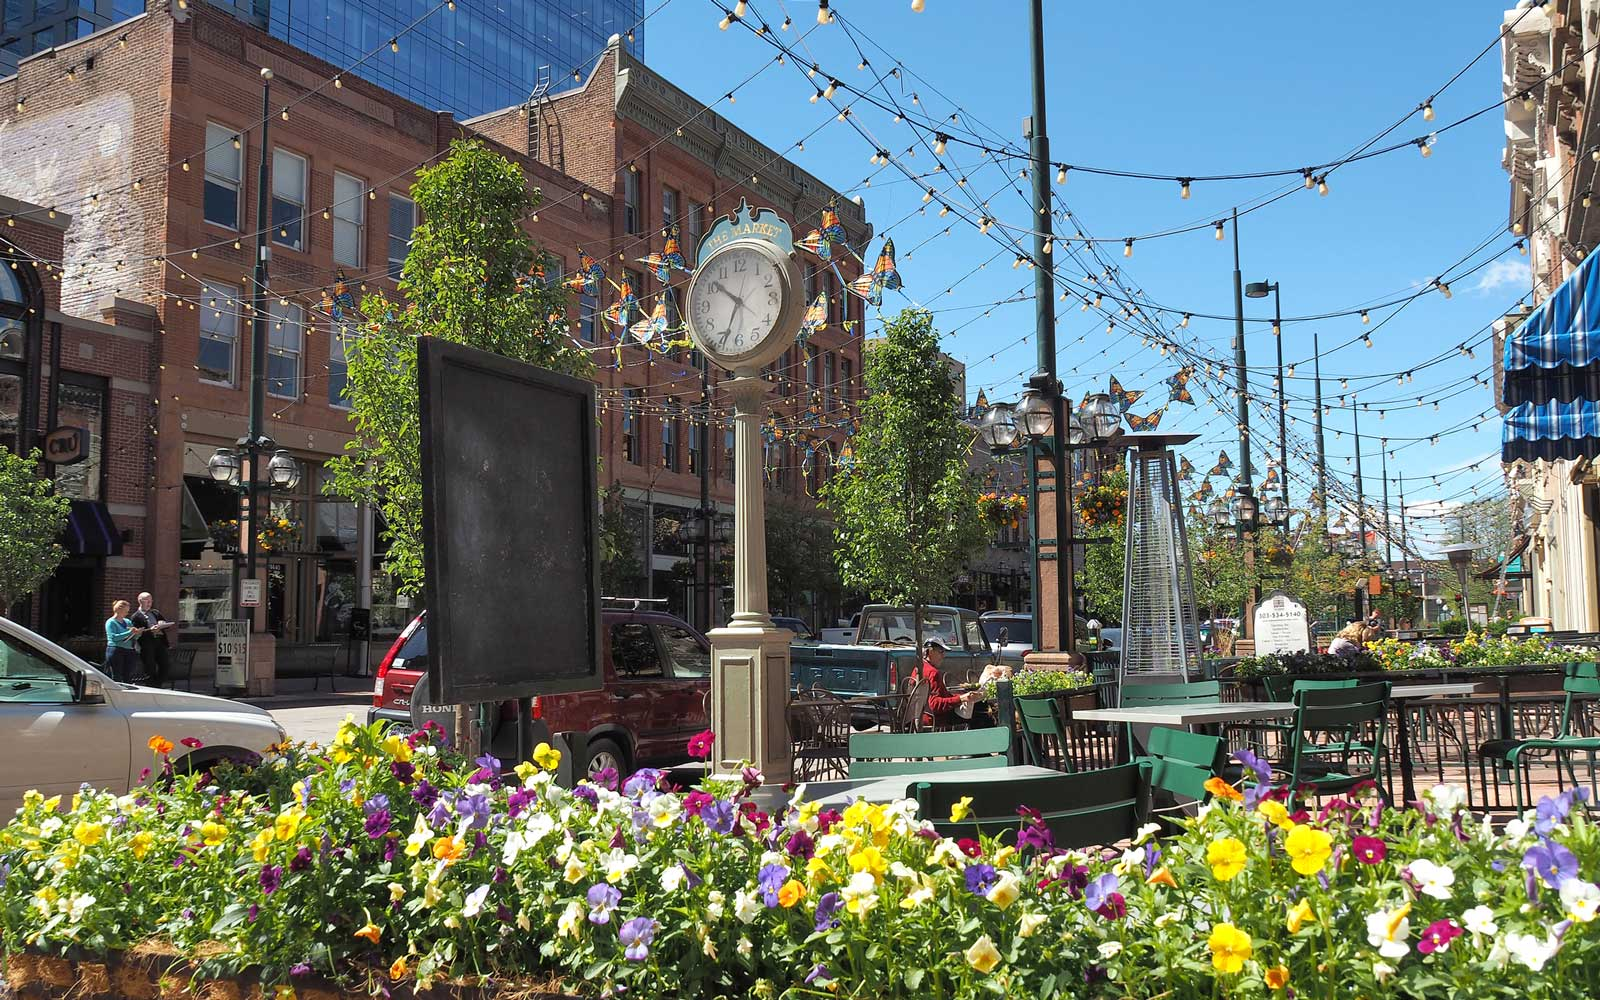 Sidewalk Café and Colorful Flowers In Larimer Street, Denver, Colorado